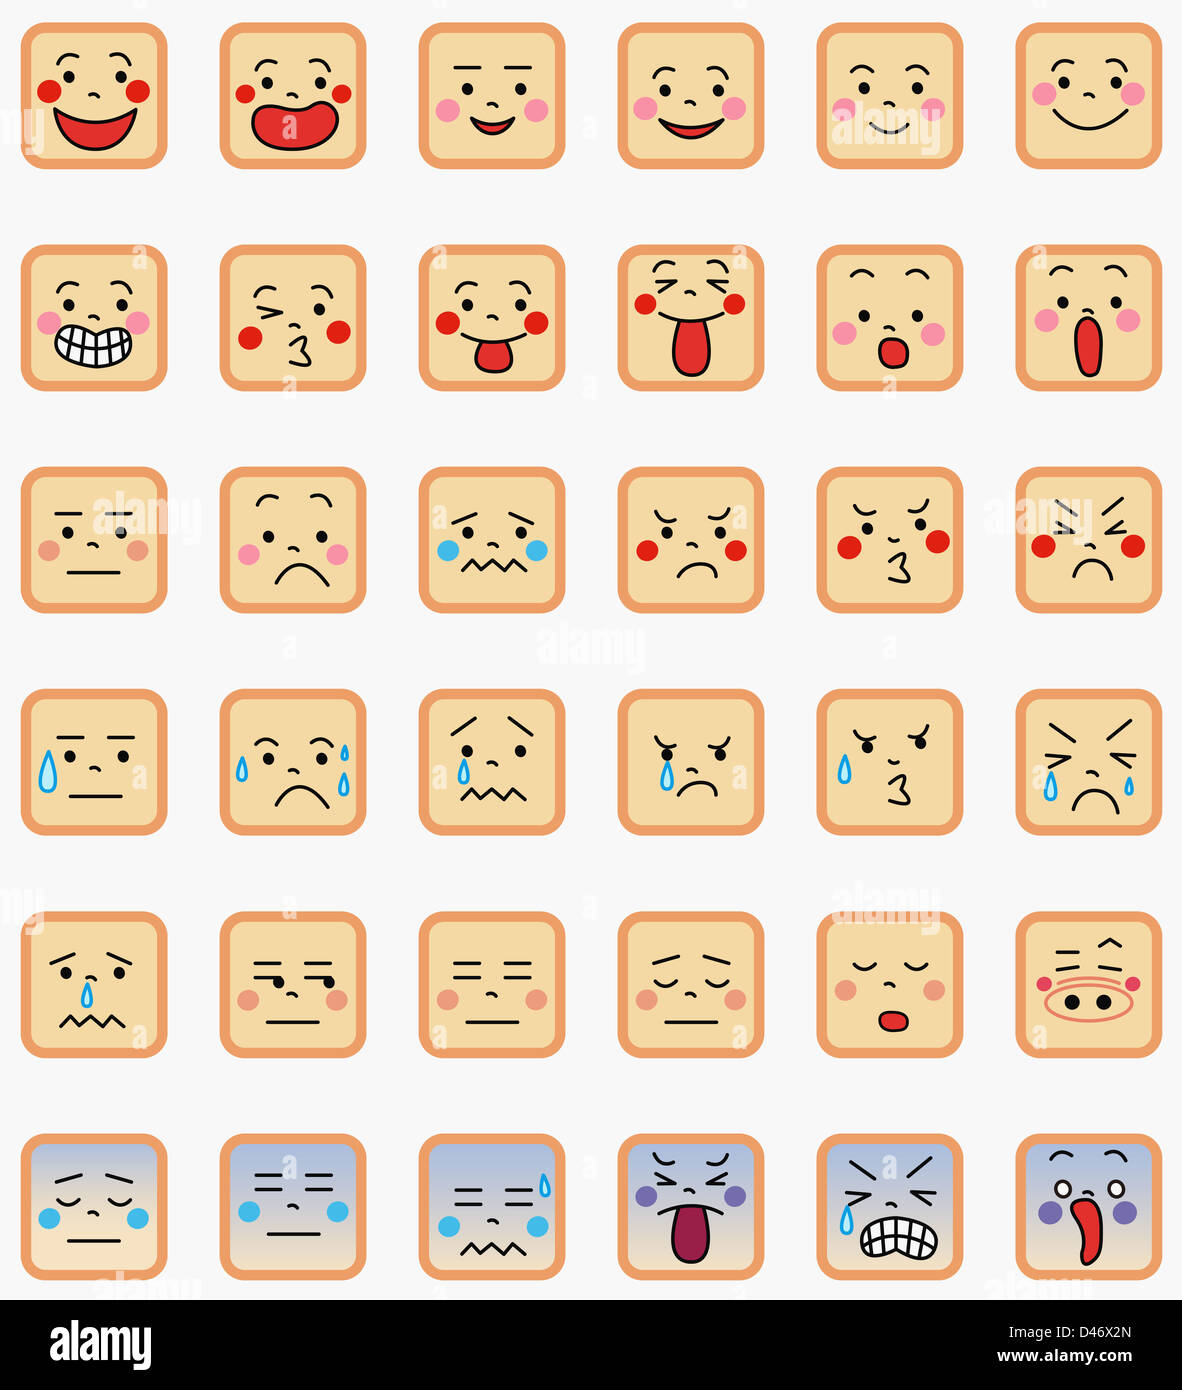 Emoticons - Stock Image